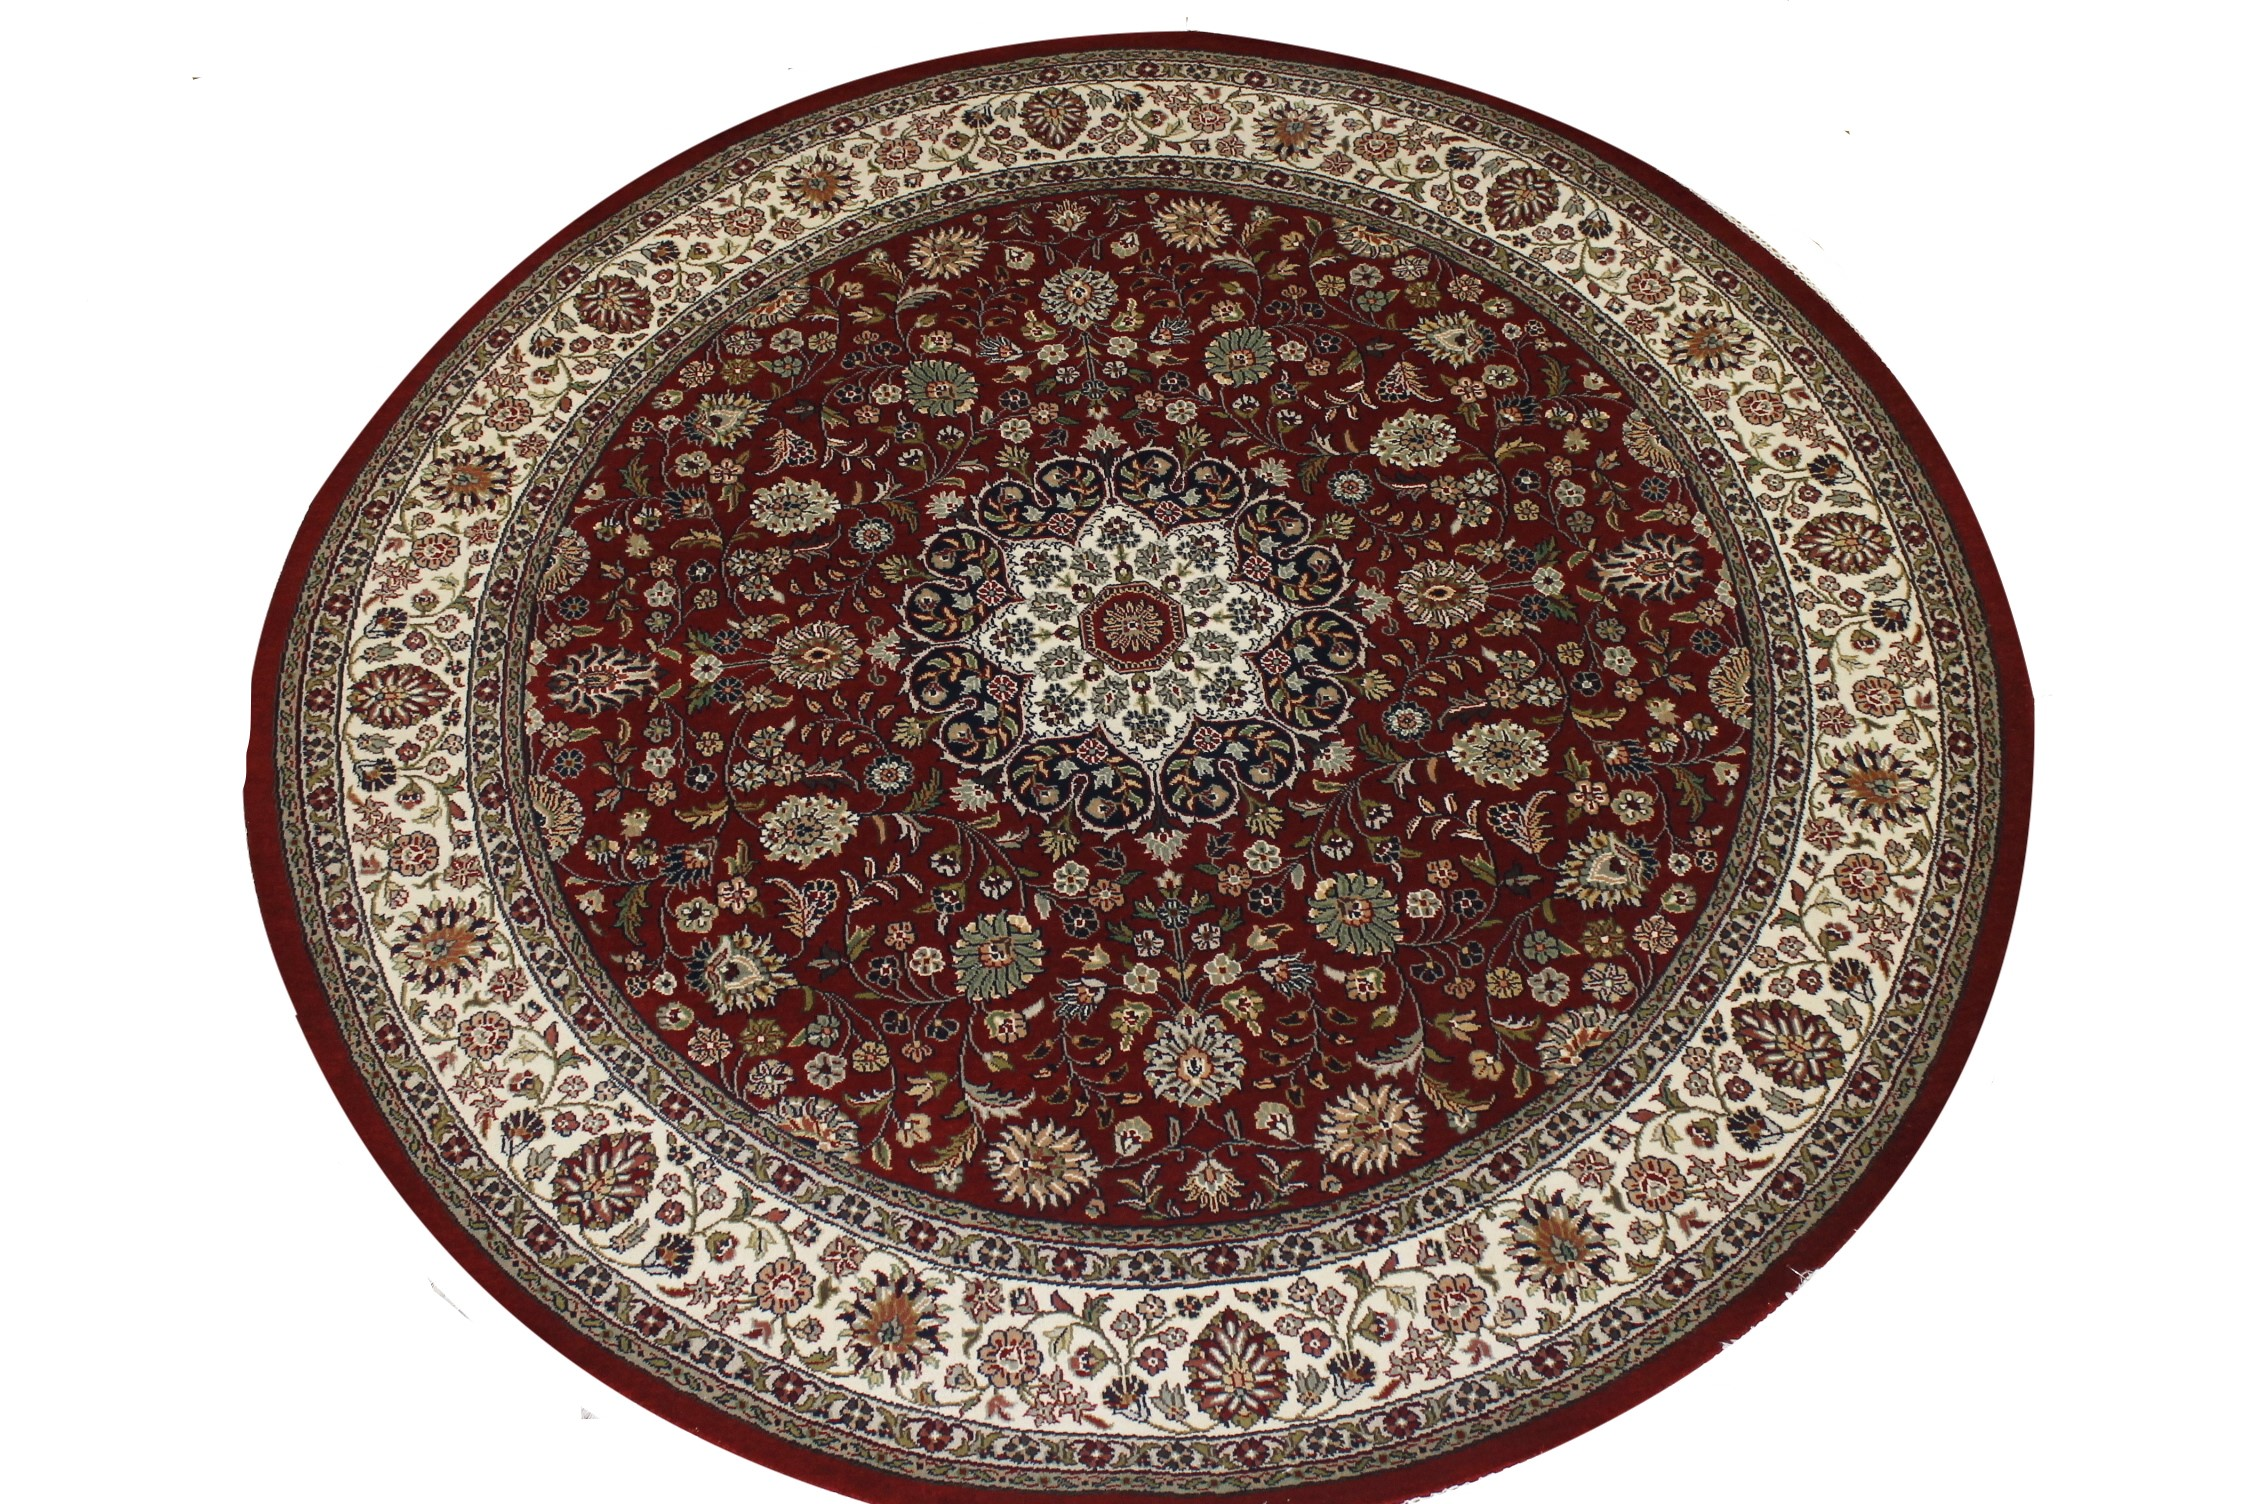 6 - 7 Round & Square Traditional Hand Knotted Wool Area Rug - MR022417